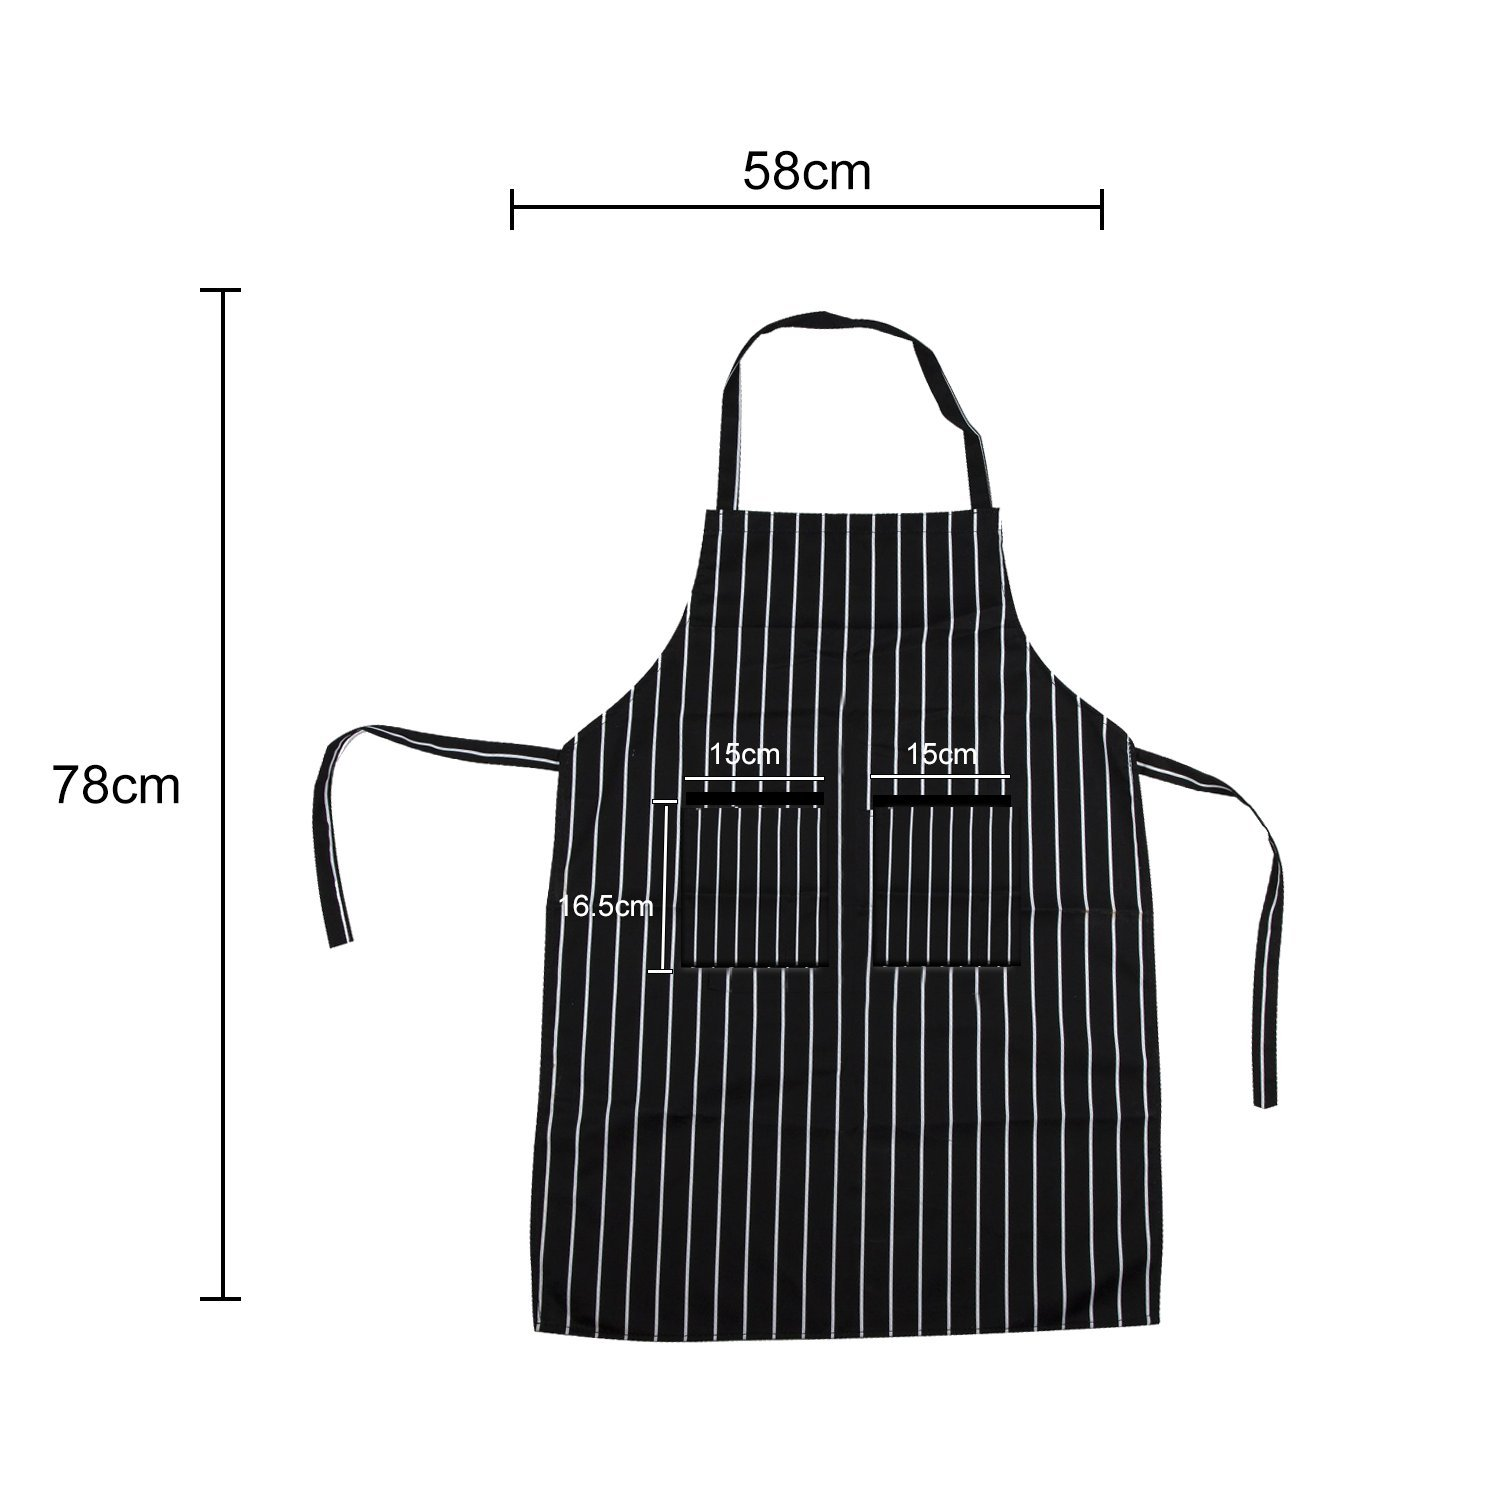 JUSTIME Chefs Apron,Cooking Kitchen Aprons with 2 Pockets,Unisex Bib Apron for Cooks Restaurant Bistro BBQ-Black/White Pinstripe